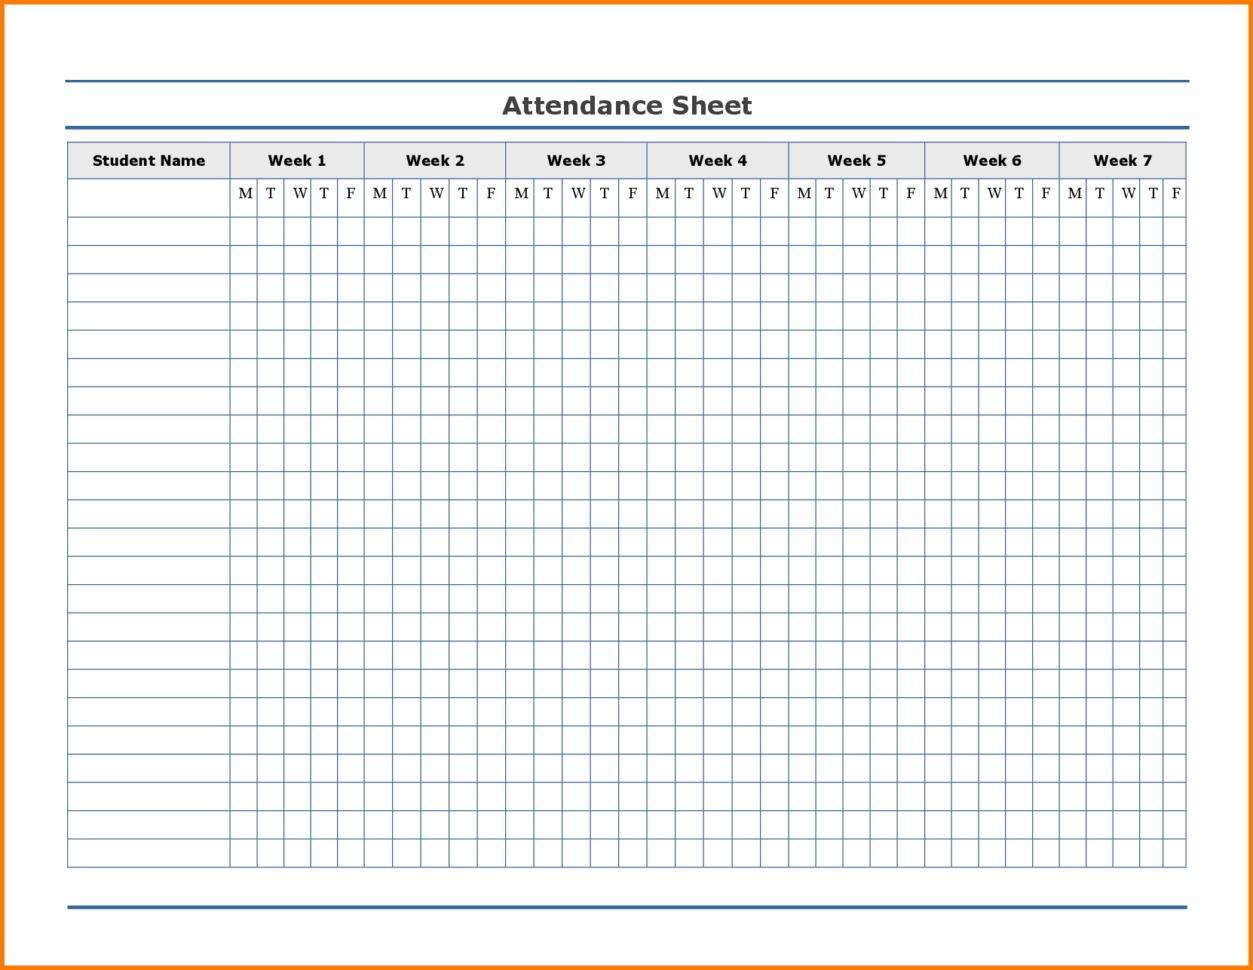 Employee Attendance Spreadsheet With Regard To Free Employee Attendance Calendar  Employee Tracker Templates 2019